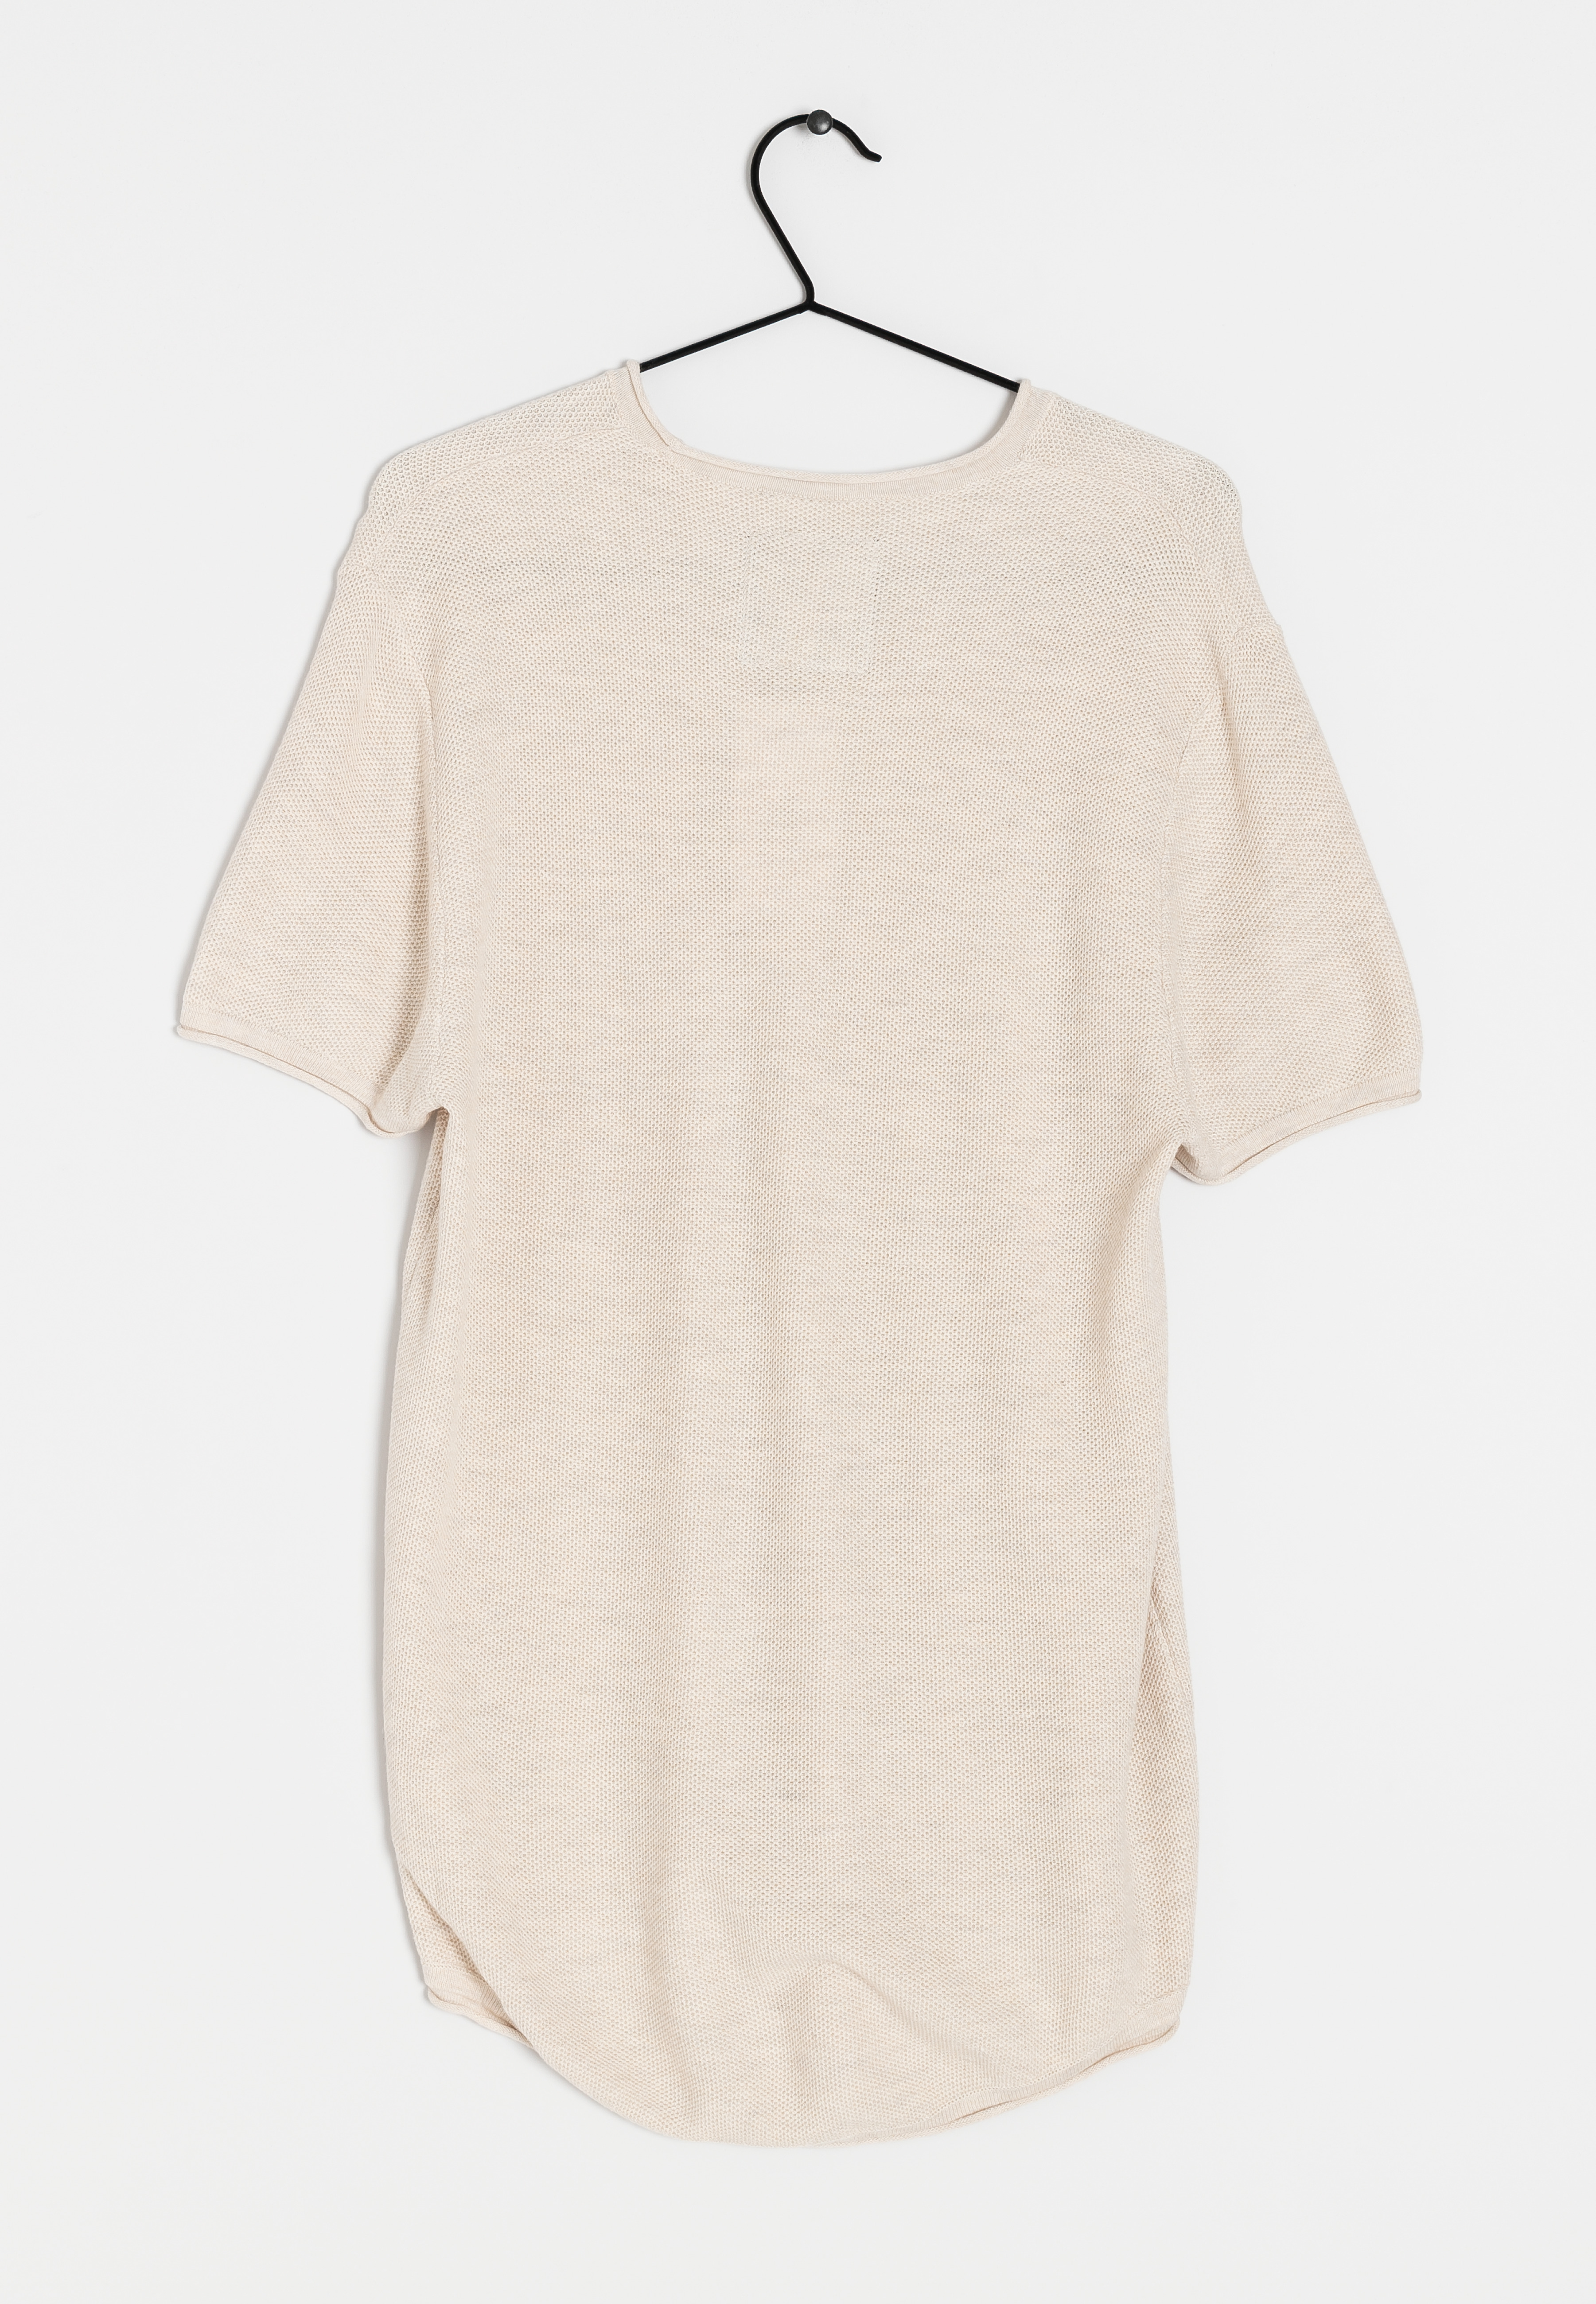 Hollister Co. T-Shirt Beige Gr.M